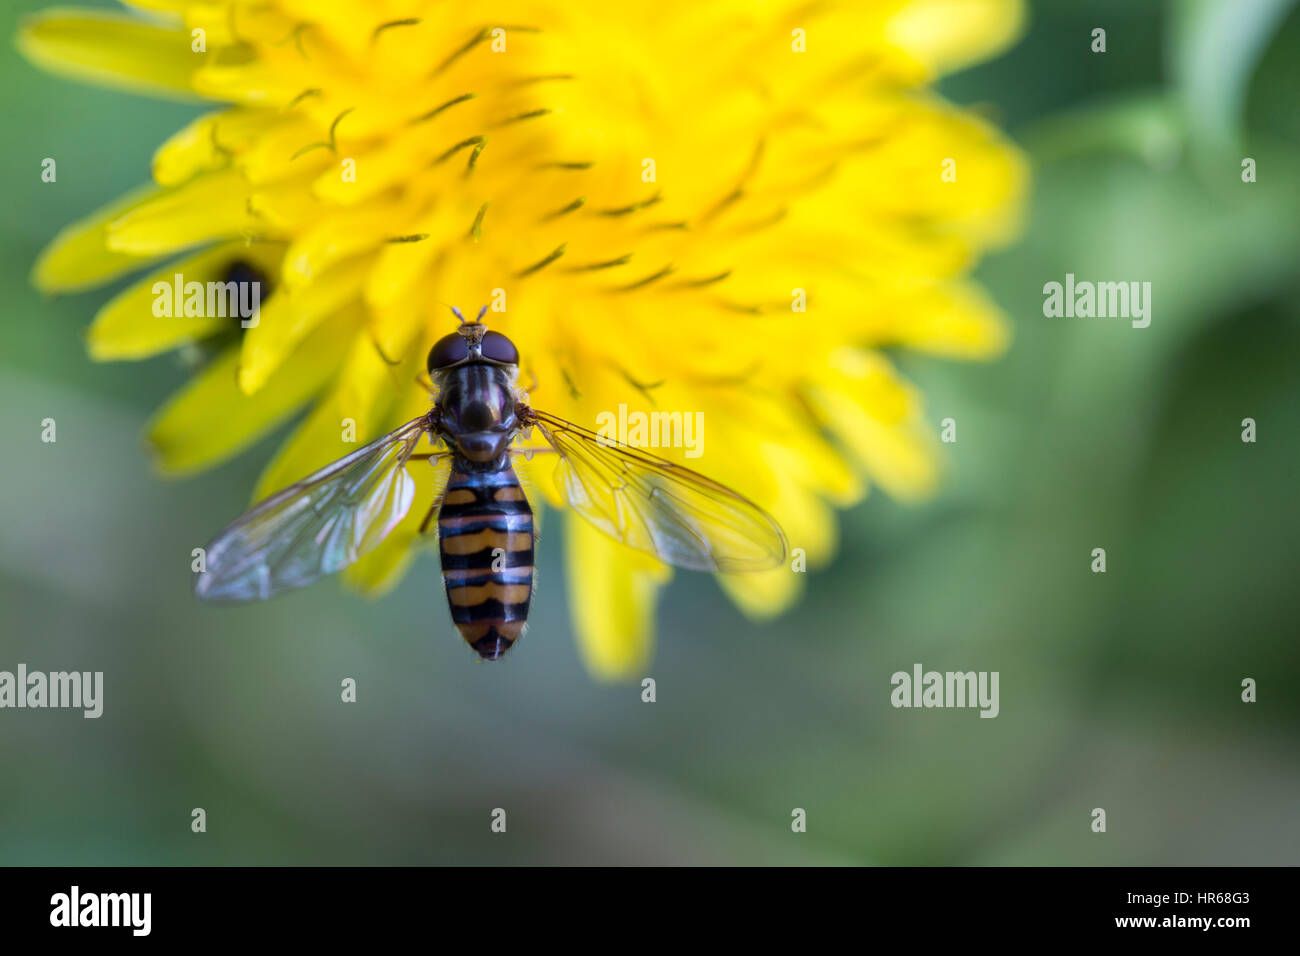 Macro view of bee on flower - Stock Image